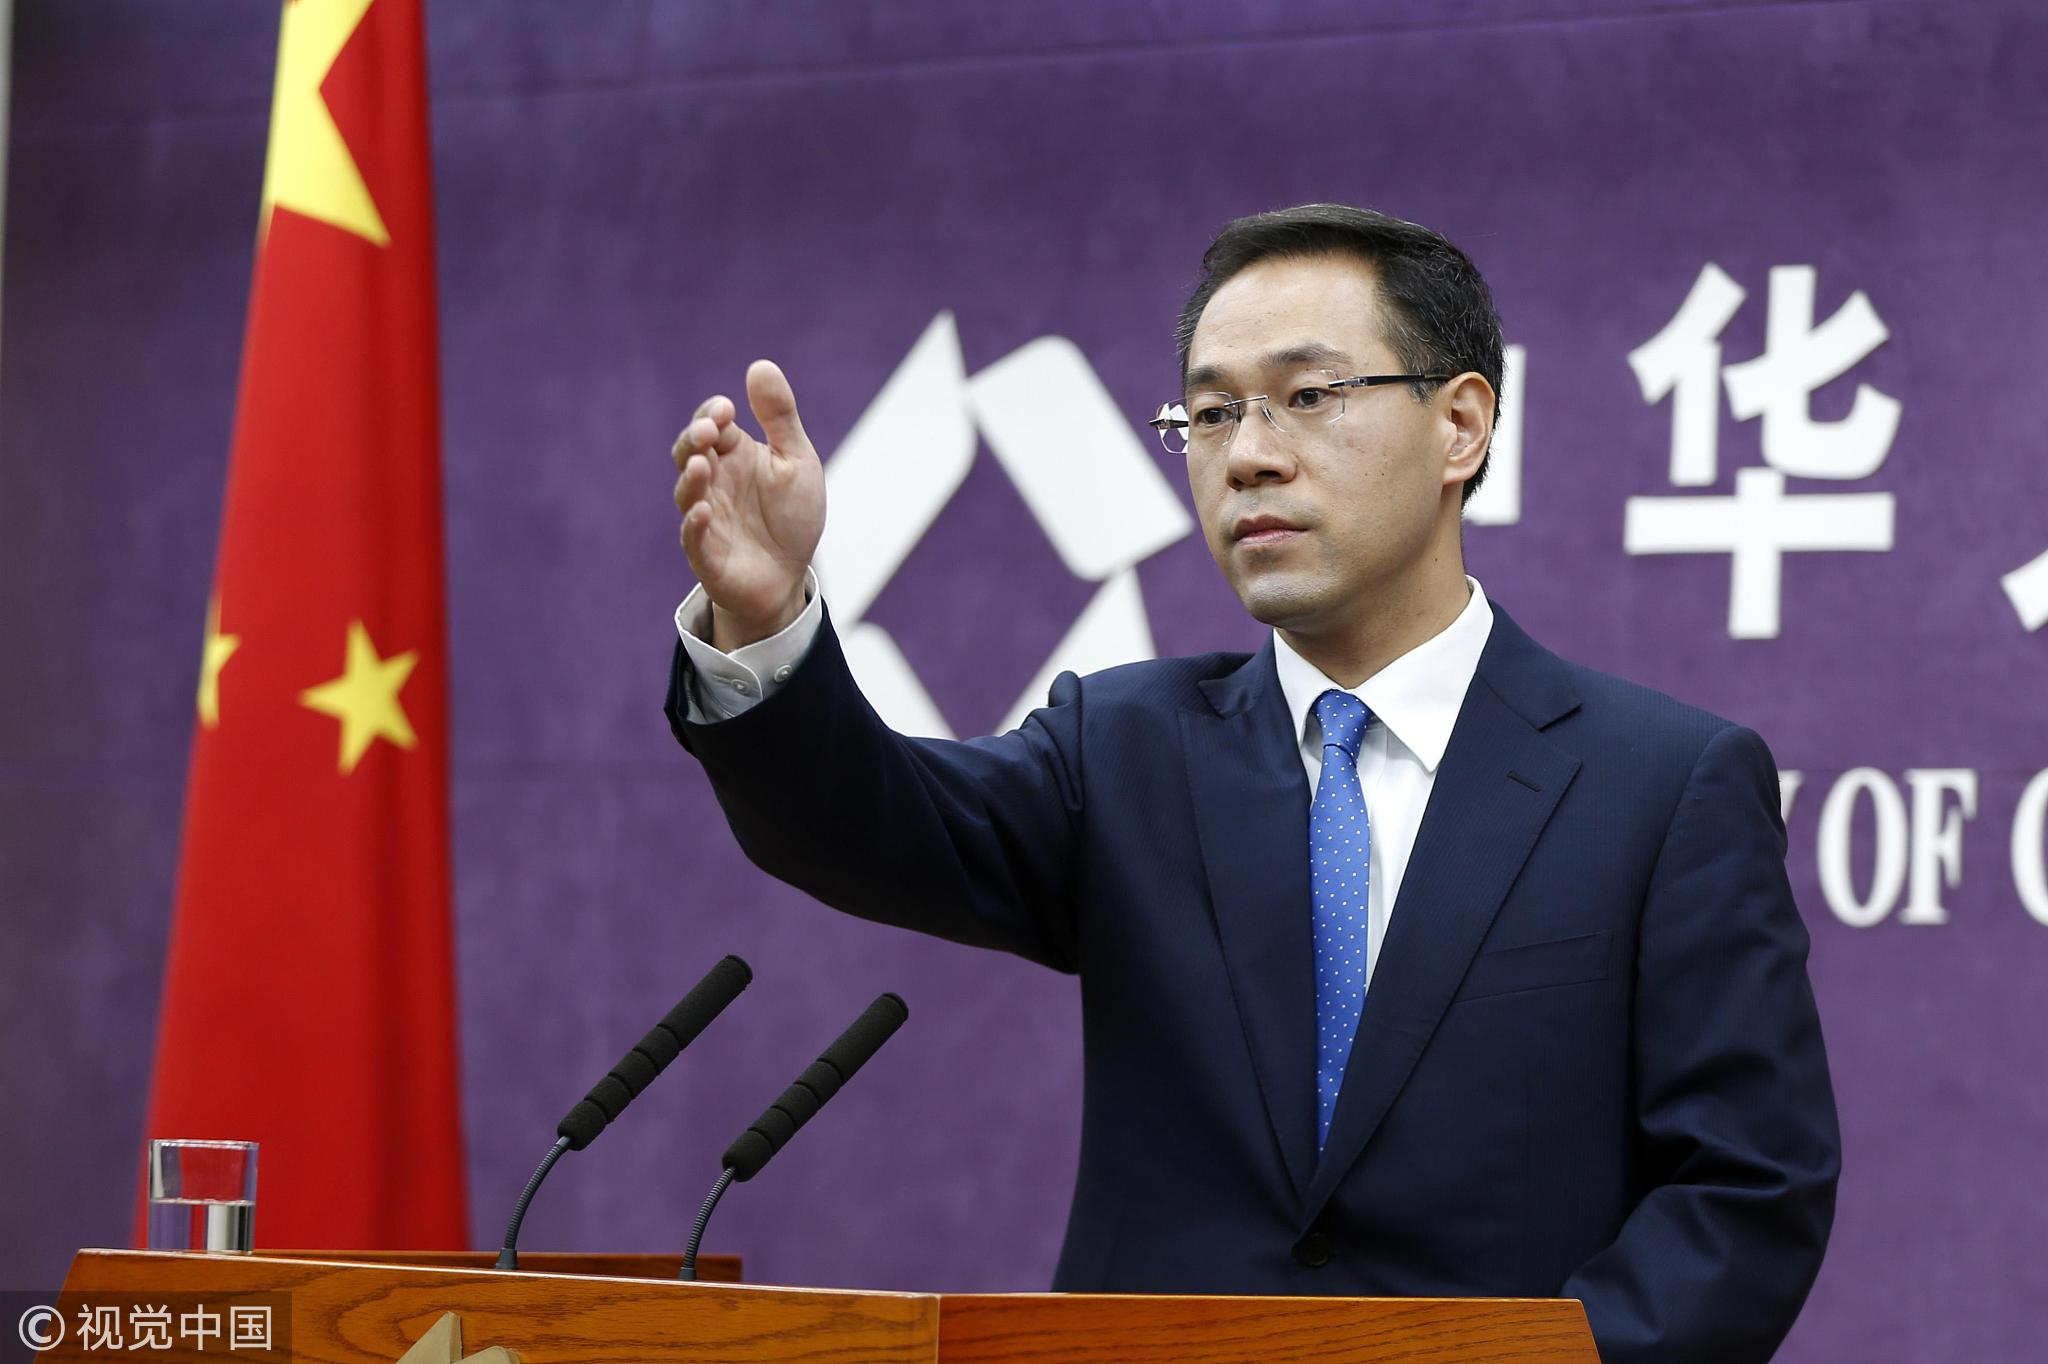 China's Spokesman of the Ministry of Commerce is giving a speech during a regular press conference on July 5, 2018. [Photo: VCG]